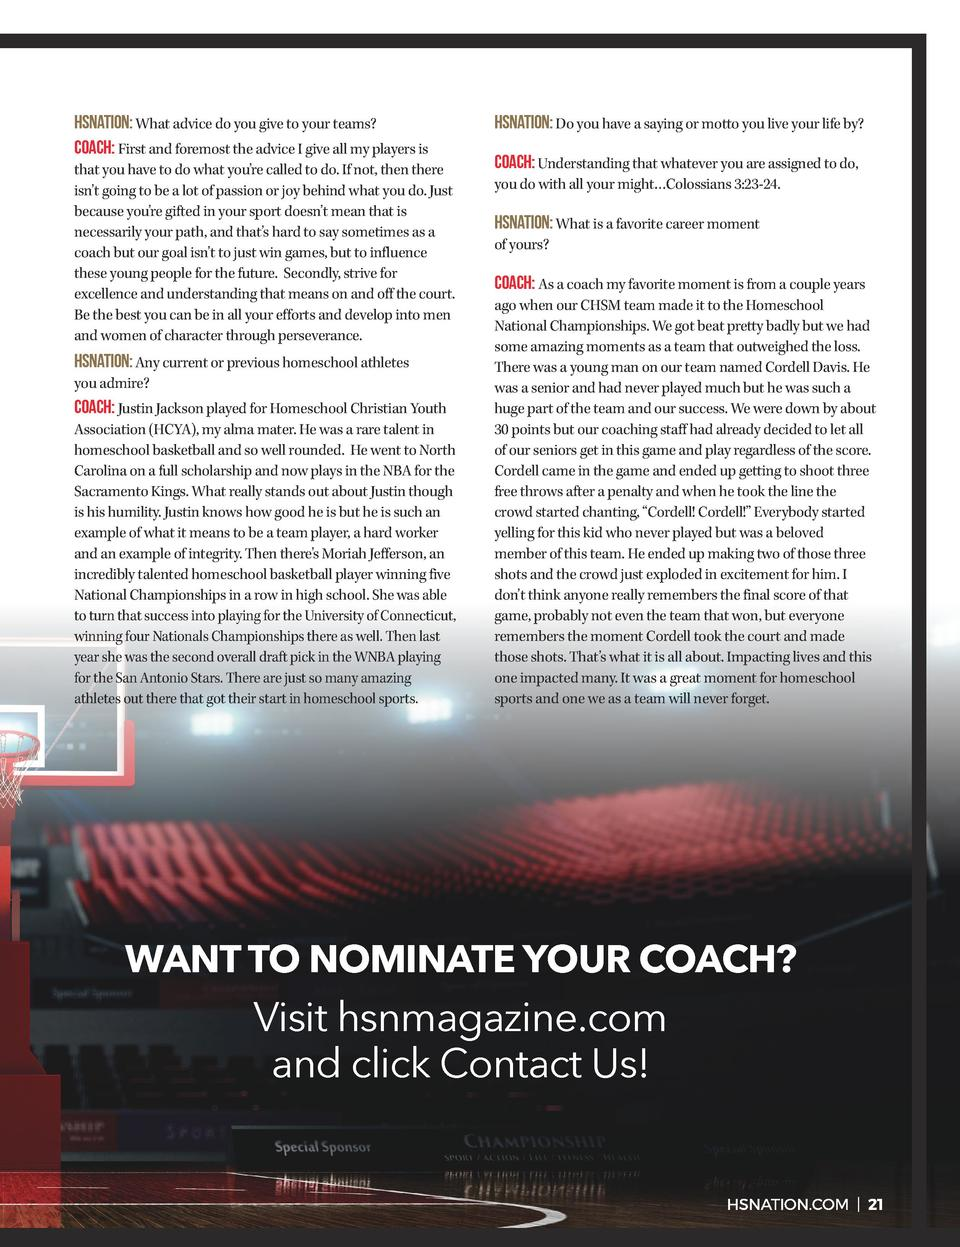 HSNATION  What advice do you give to your teams  Coach  First and foremost the advice I give all my players is that you ha...